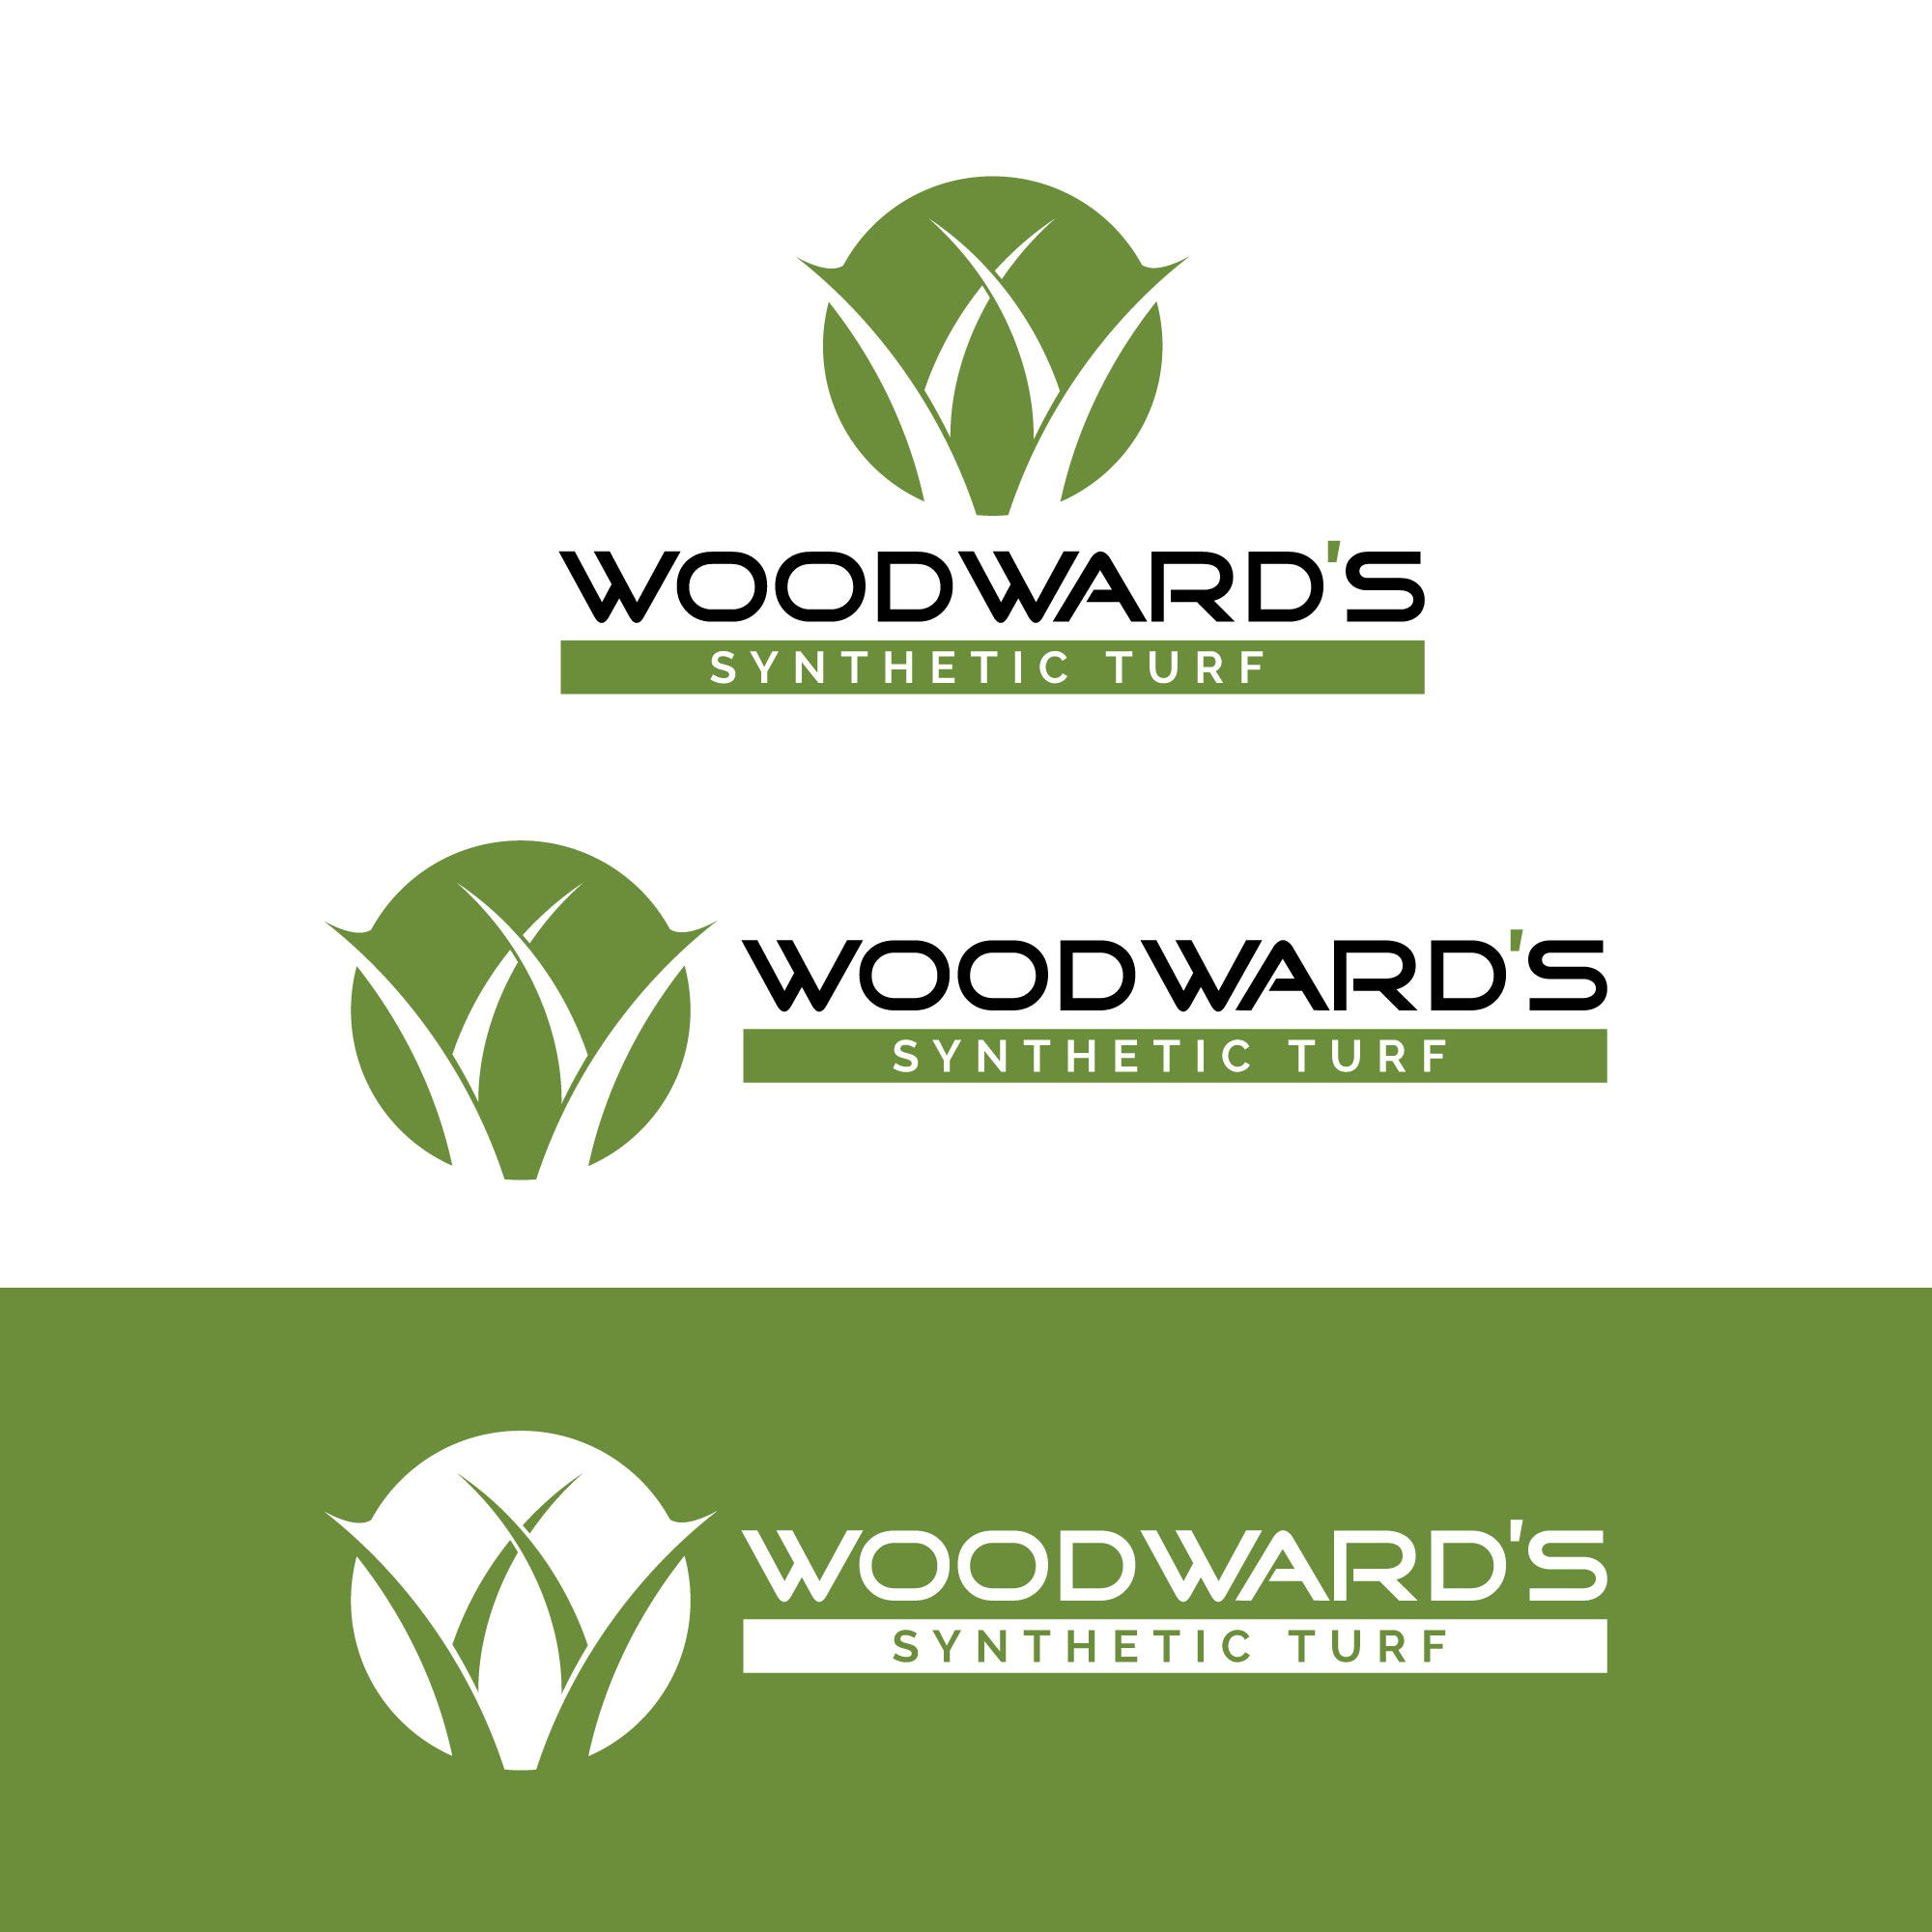 Logo Design by Roza Apostolska - Entry No. 16 in the Logo Design Contest Artistic Logo Design for Woodward's Synthetic Turf.